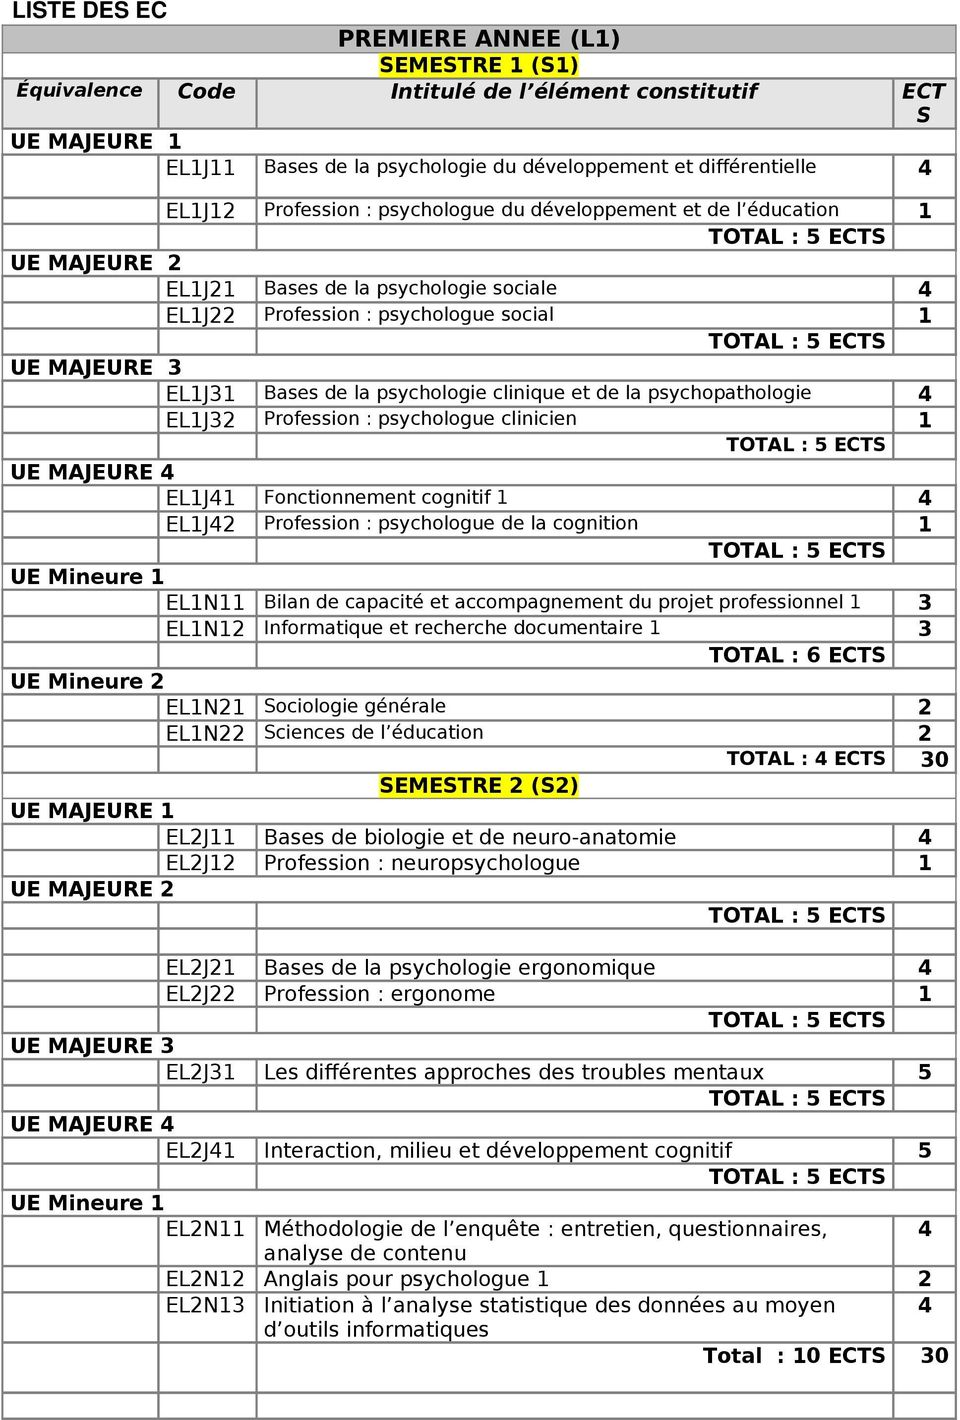 psychologie clinique et de la psychopathologie 4 EL1J32 Profession : psychologue clinicien 1 UE MAJEURE 4 EL1J41 Fonctionnement cognitif 1 4 EL1J42 Profession : psychologue de la cognition 1 UE